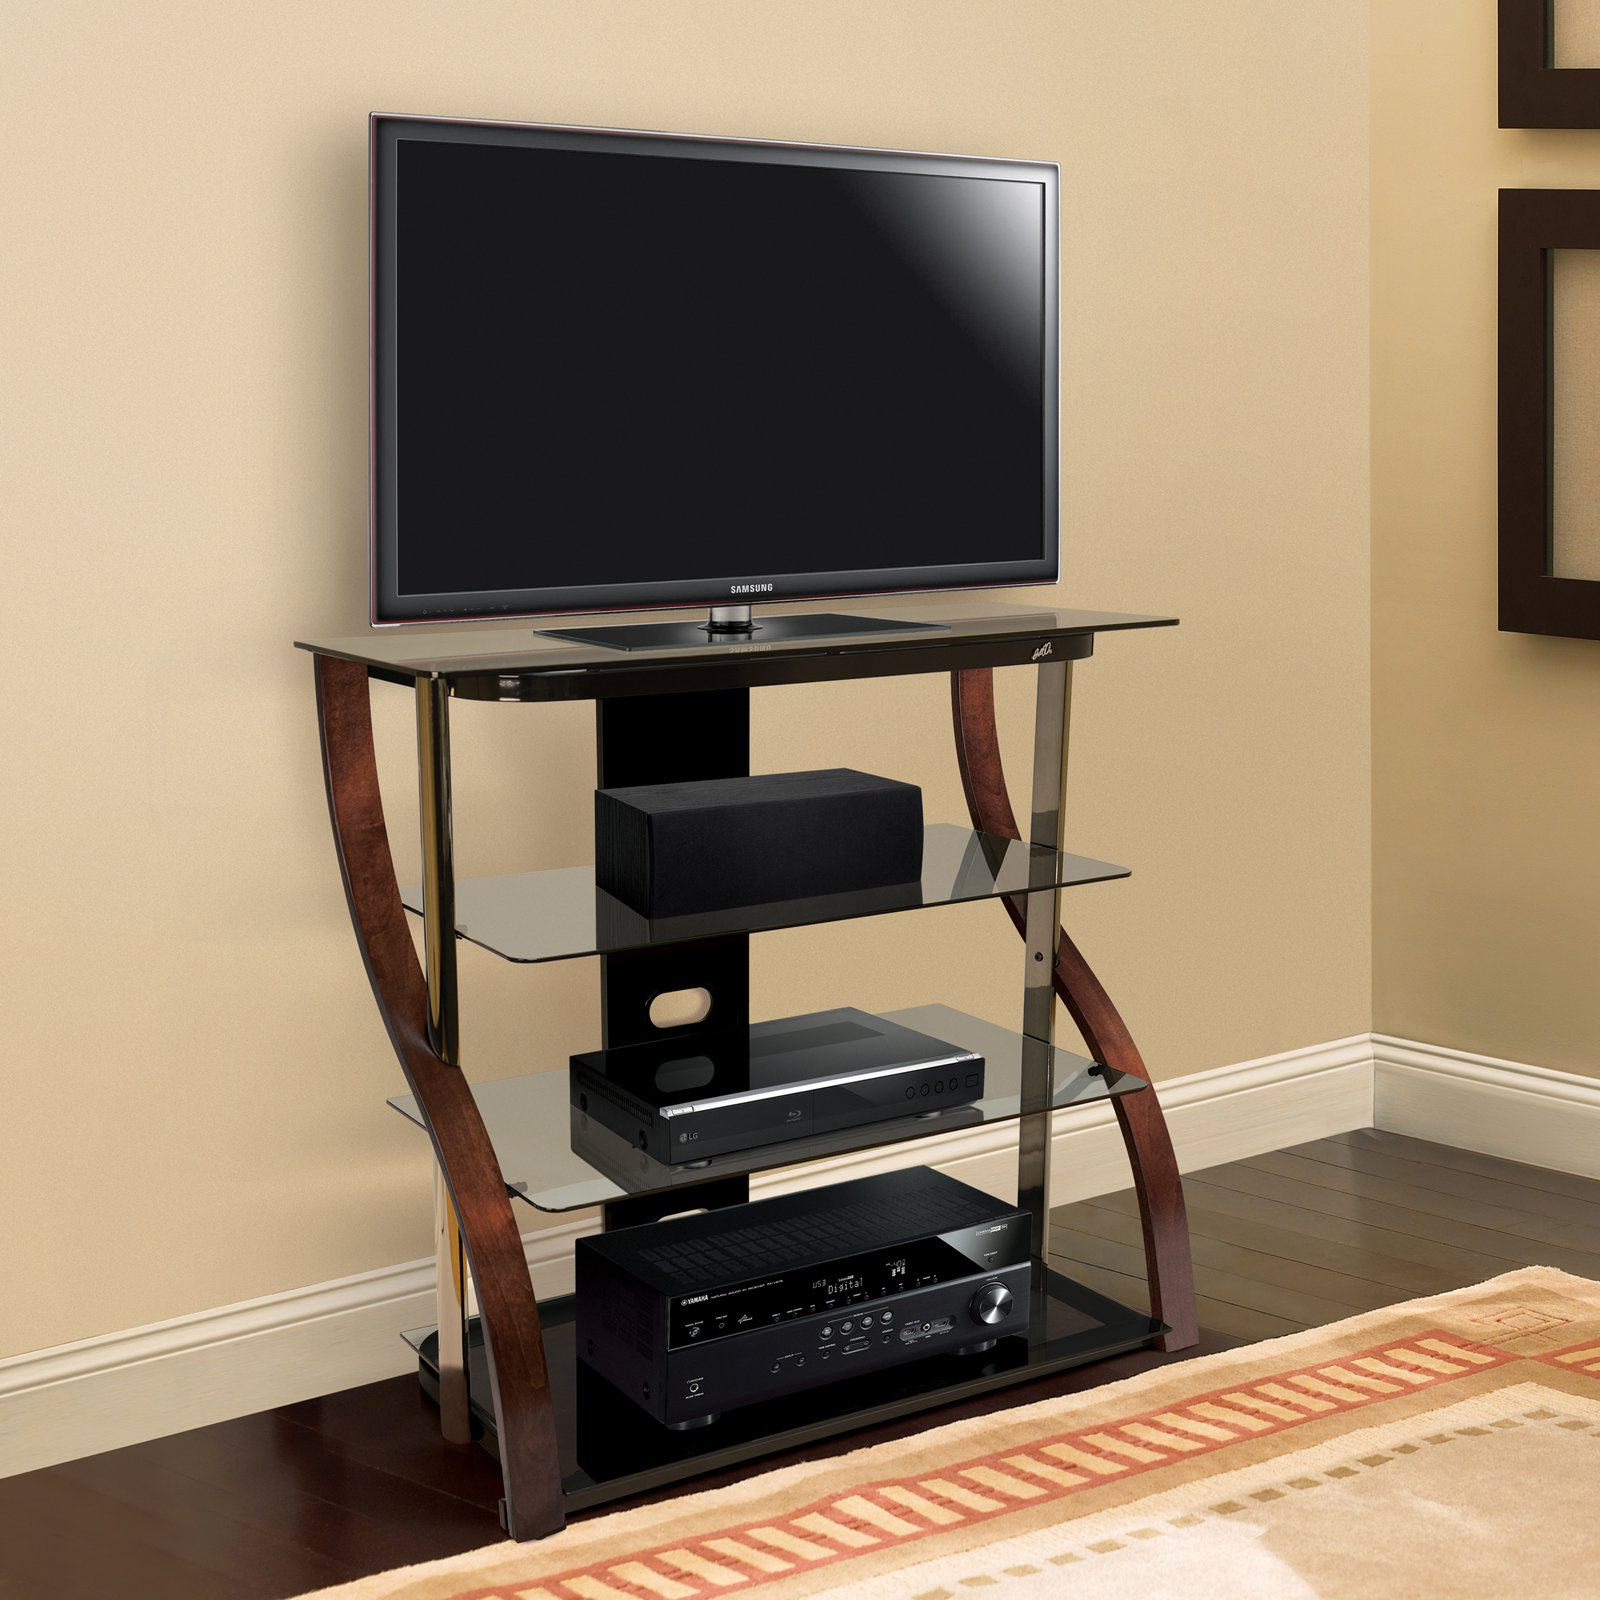 BellO 40 in. Curved TV Stand - Black/Espresso